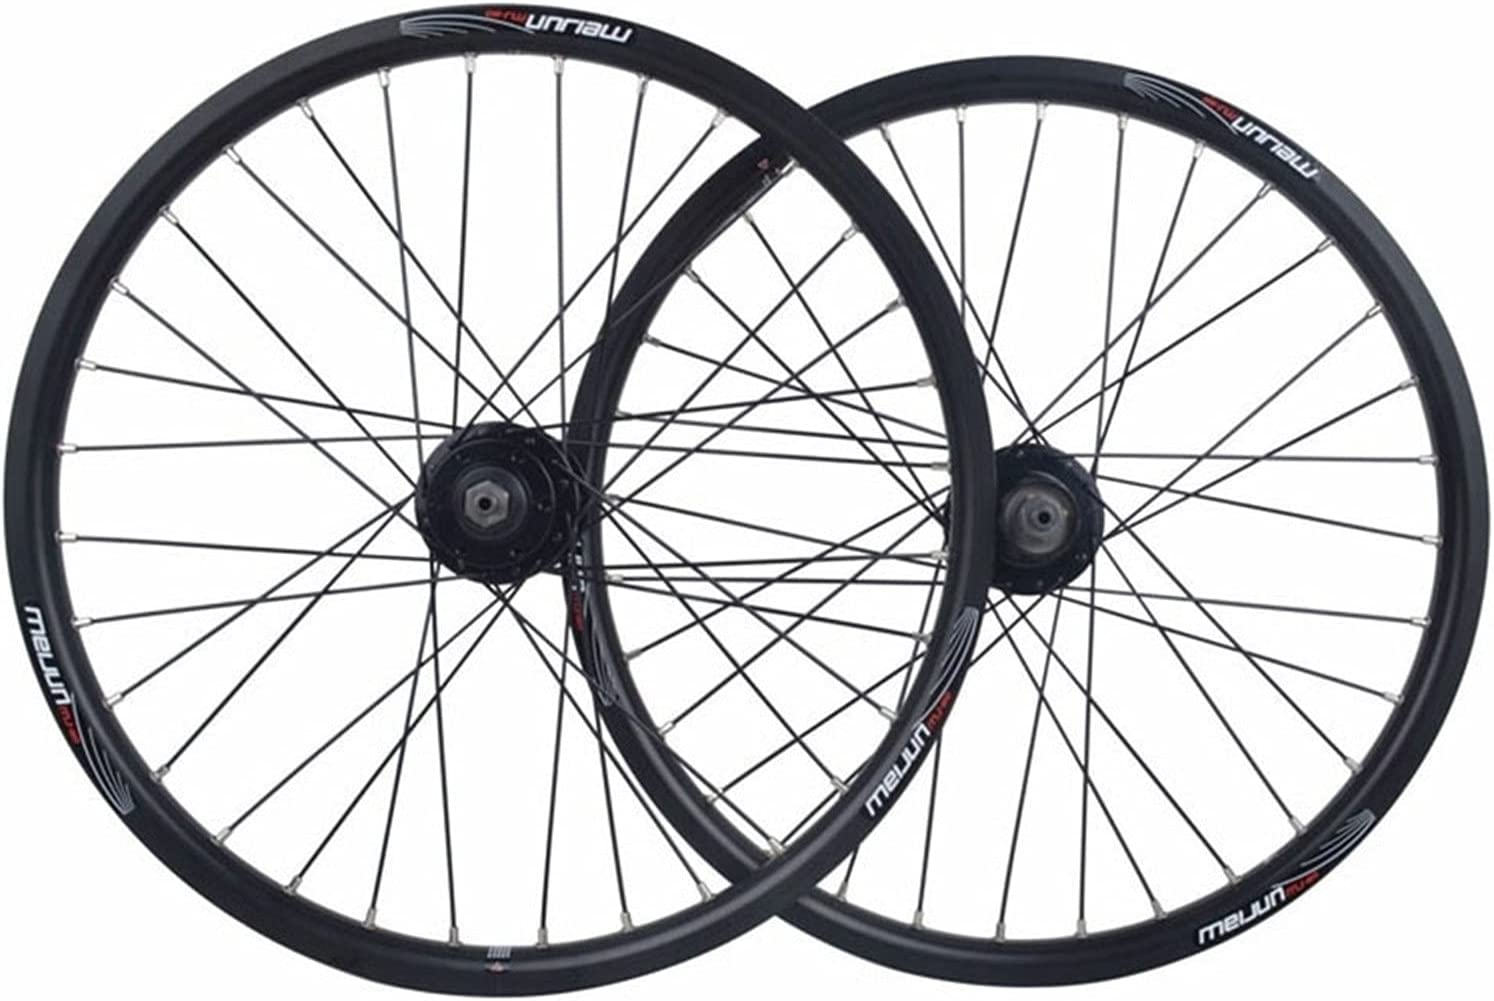 Bike Rim 20 Inch Small Wheel Brake Disc Max 42% OFF We OFFer at cheap prices Wheelset Bicycle Hub